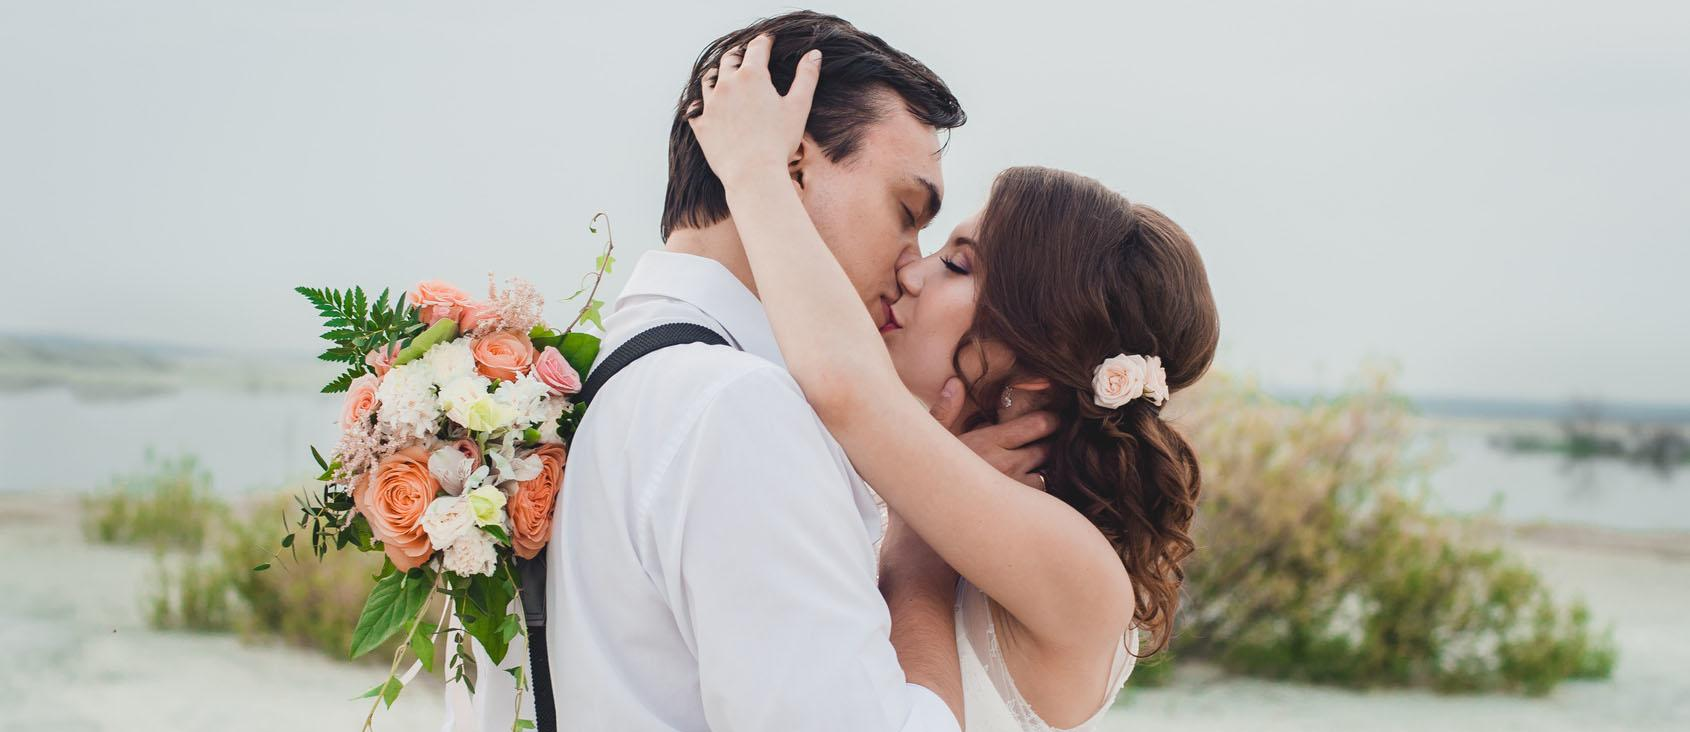 18 Breathtaking Wedding Kiss Photos